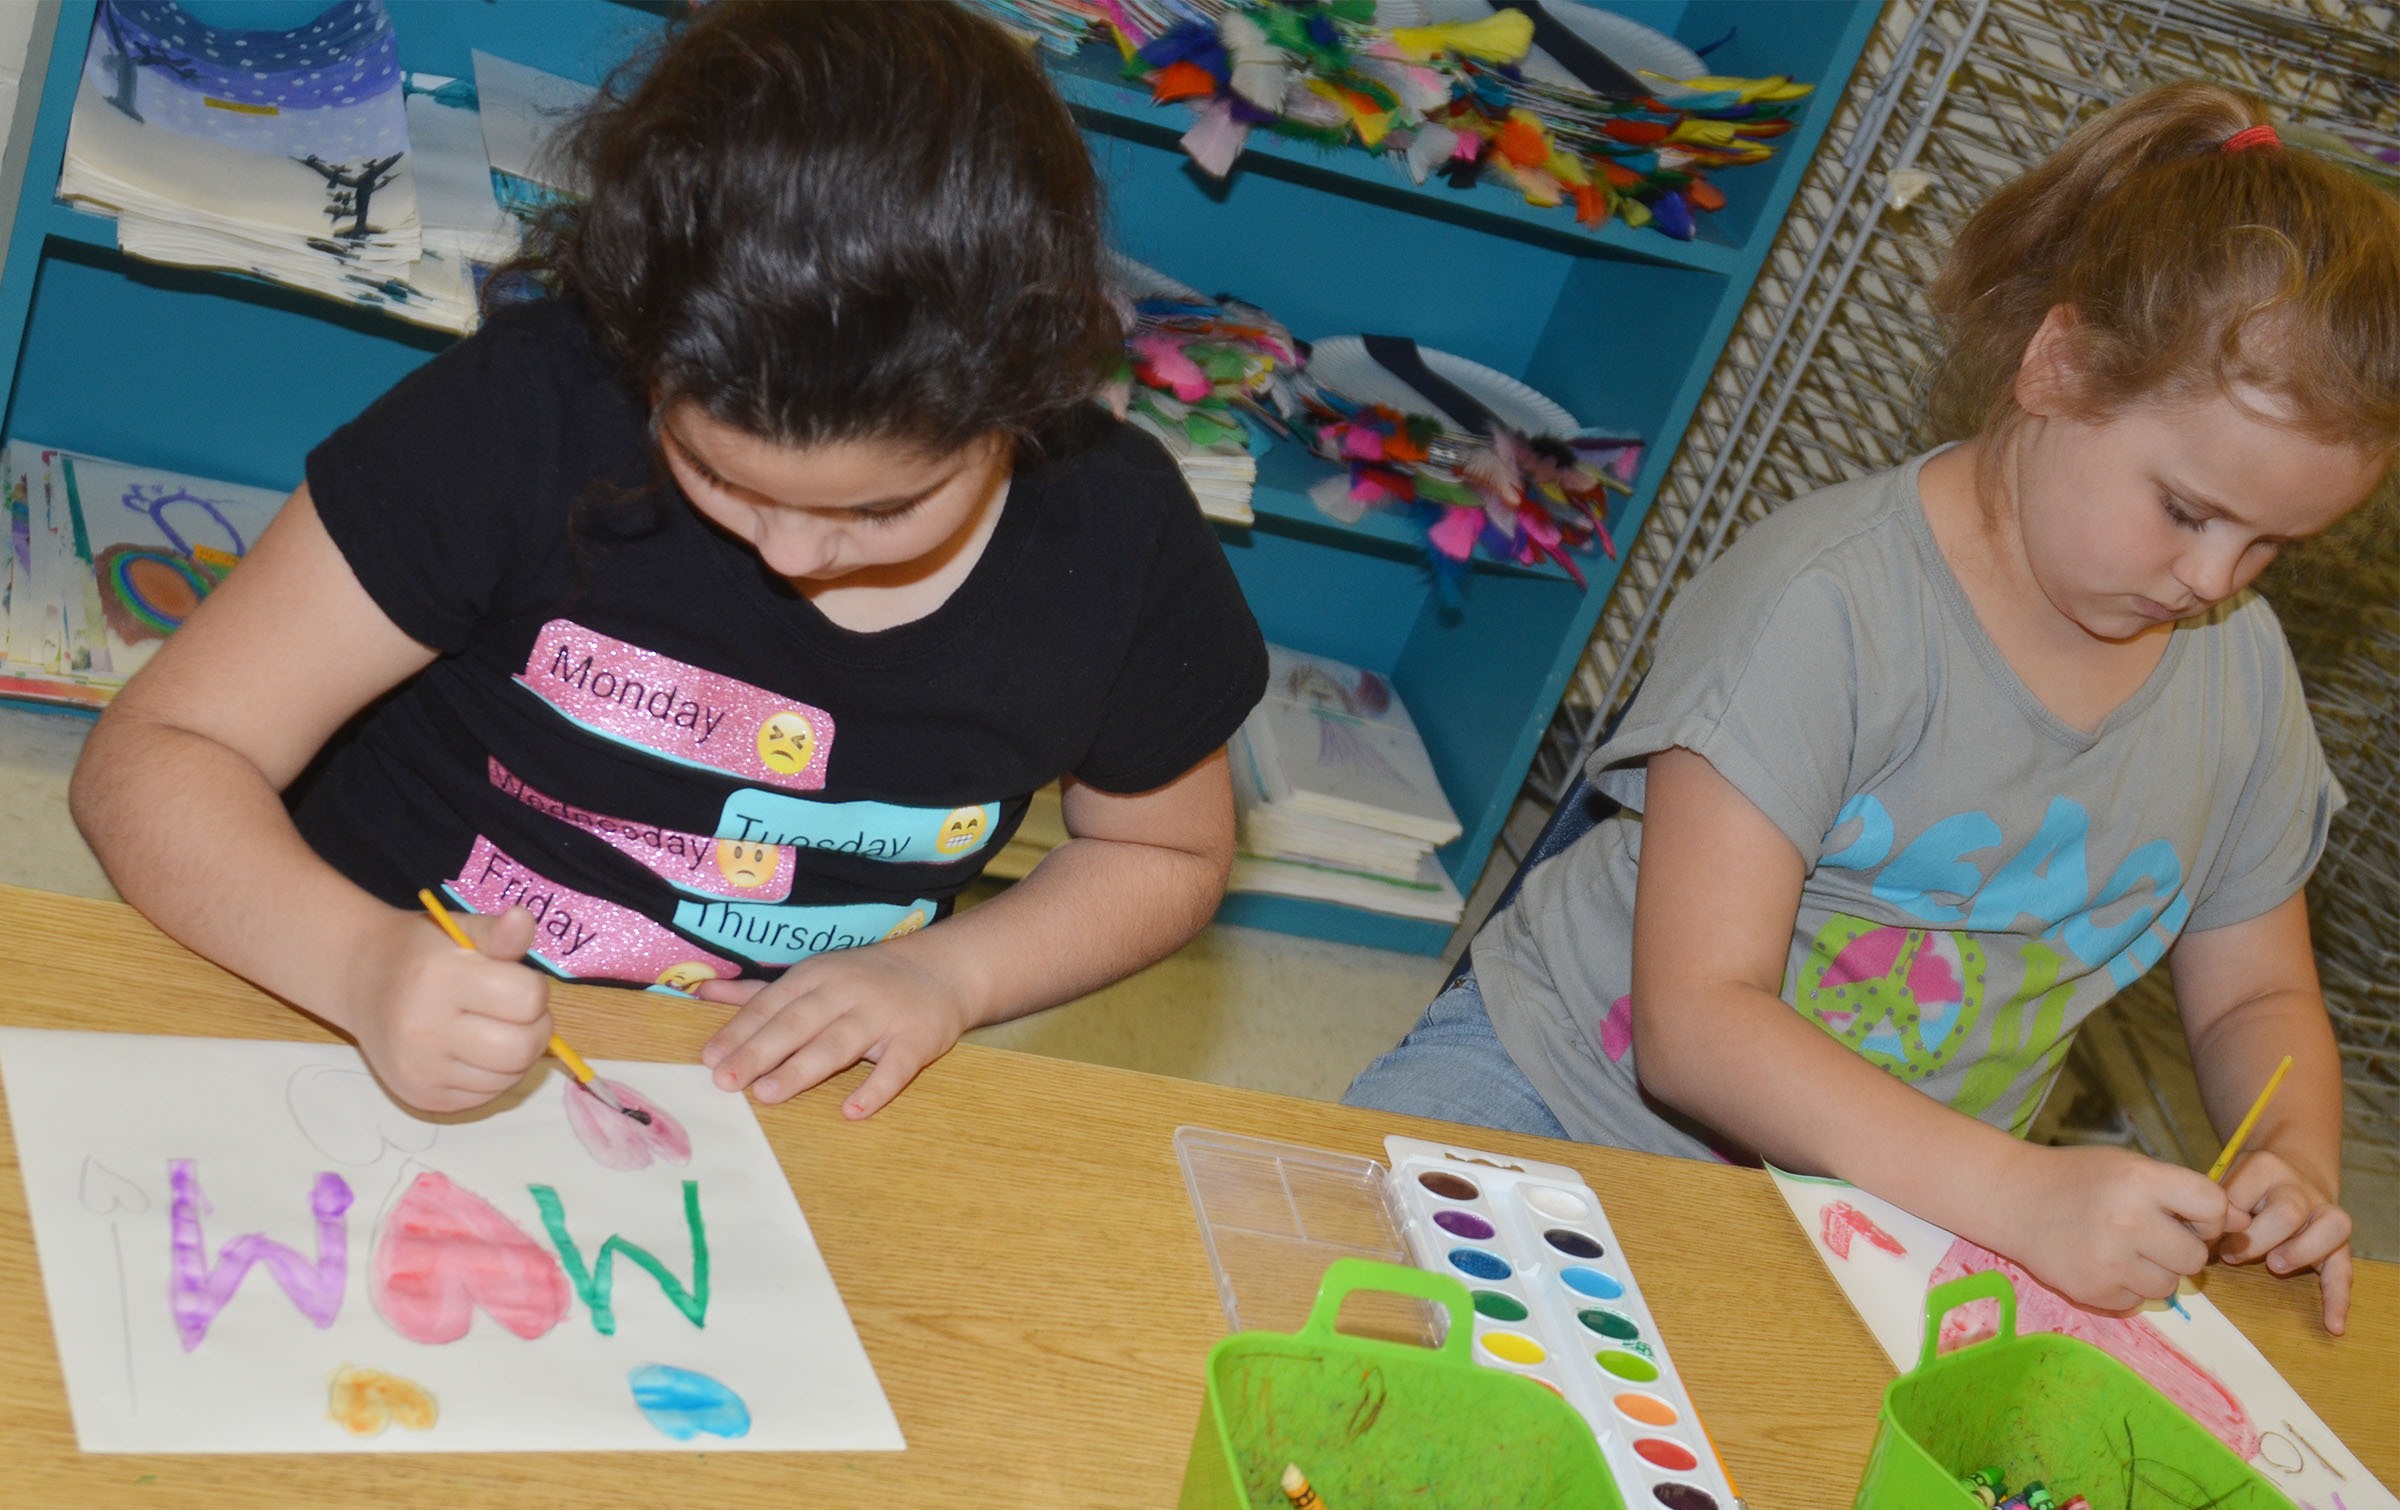 CES third-grader Brooklyn Boudreaux, at left, and Amaya Anguiano paint watercolor paintings for their mothers.